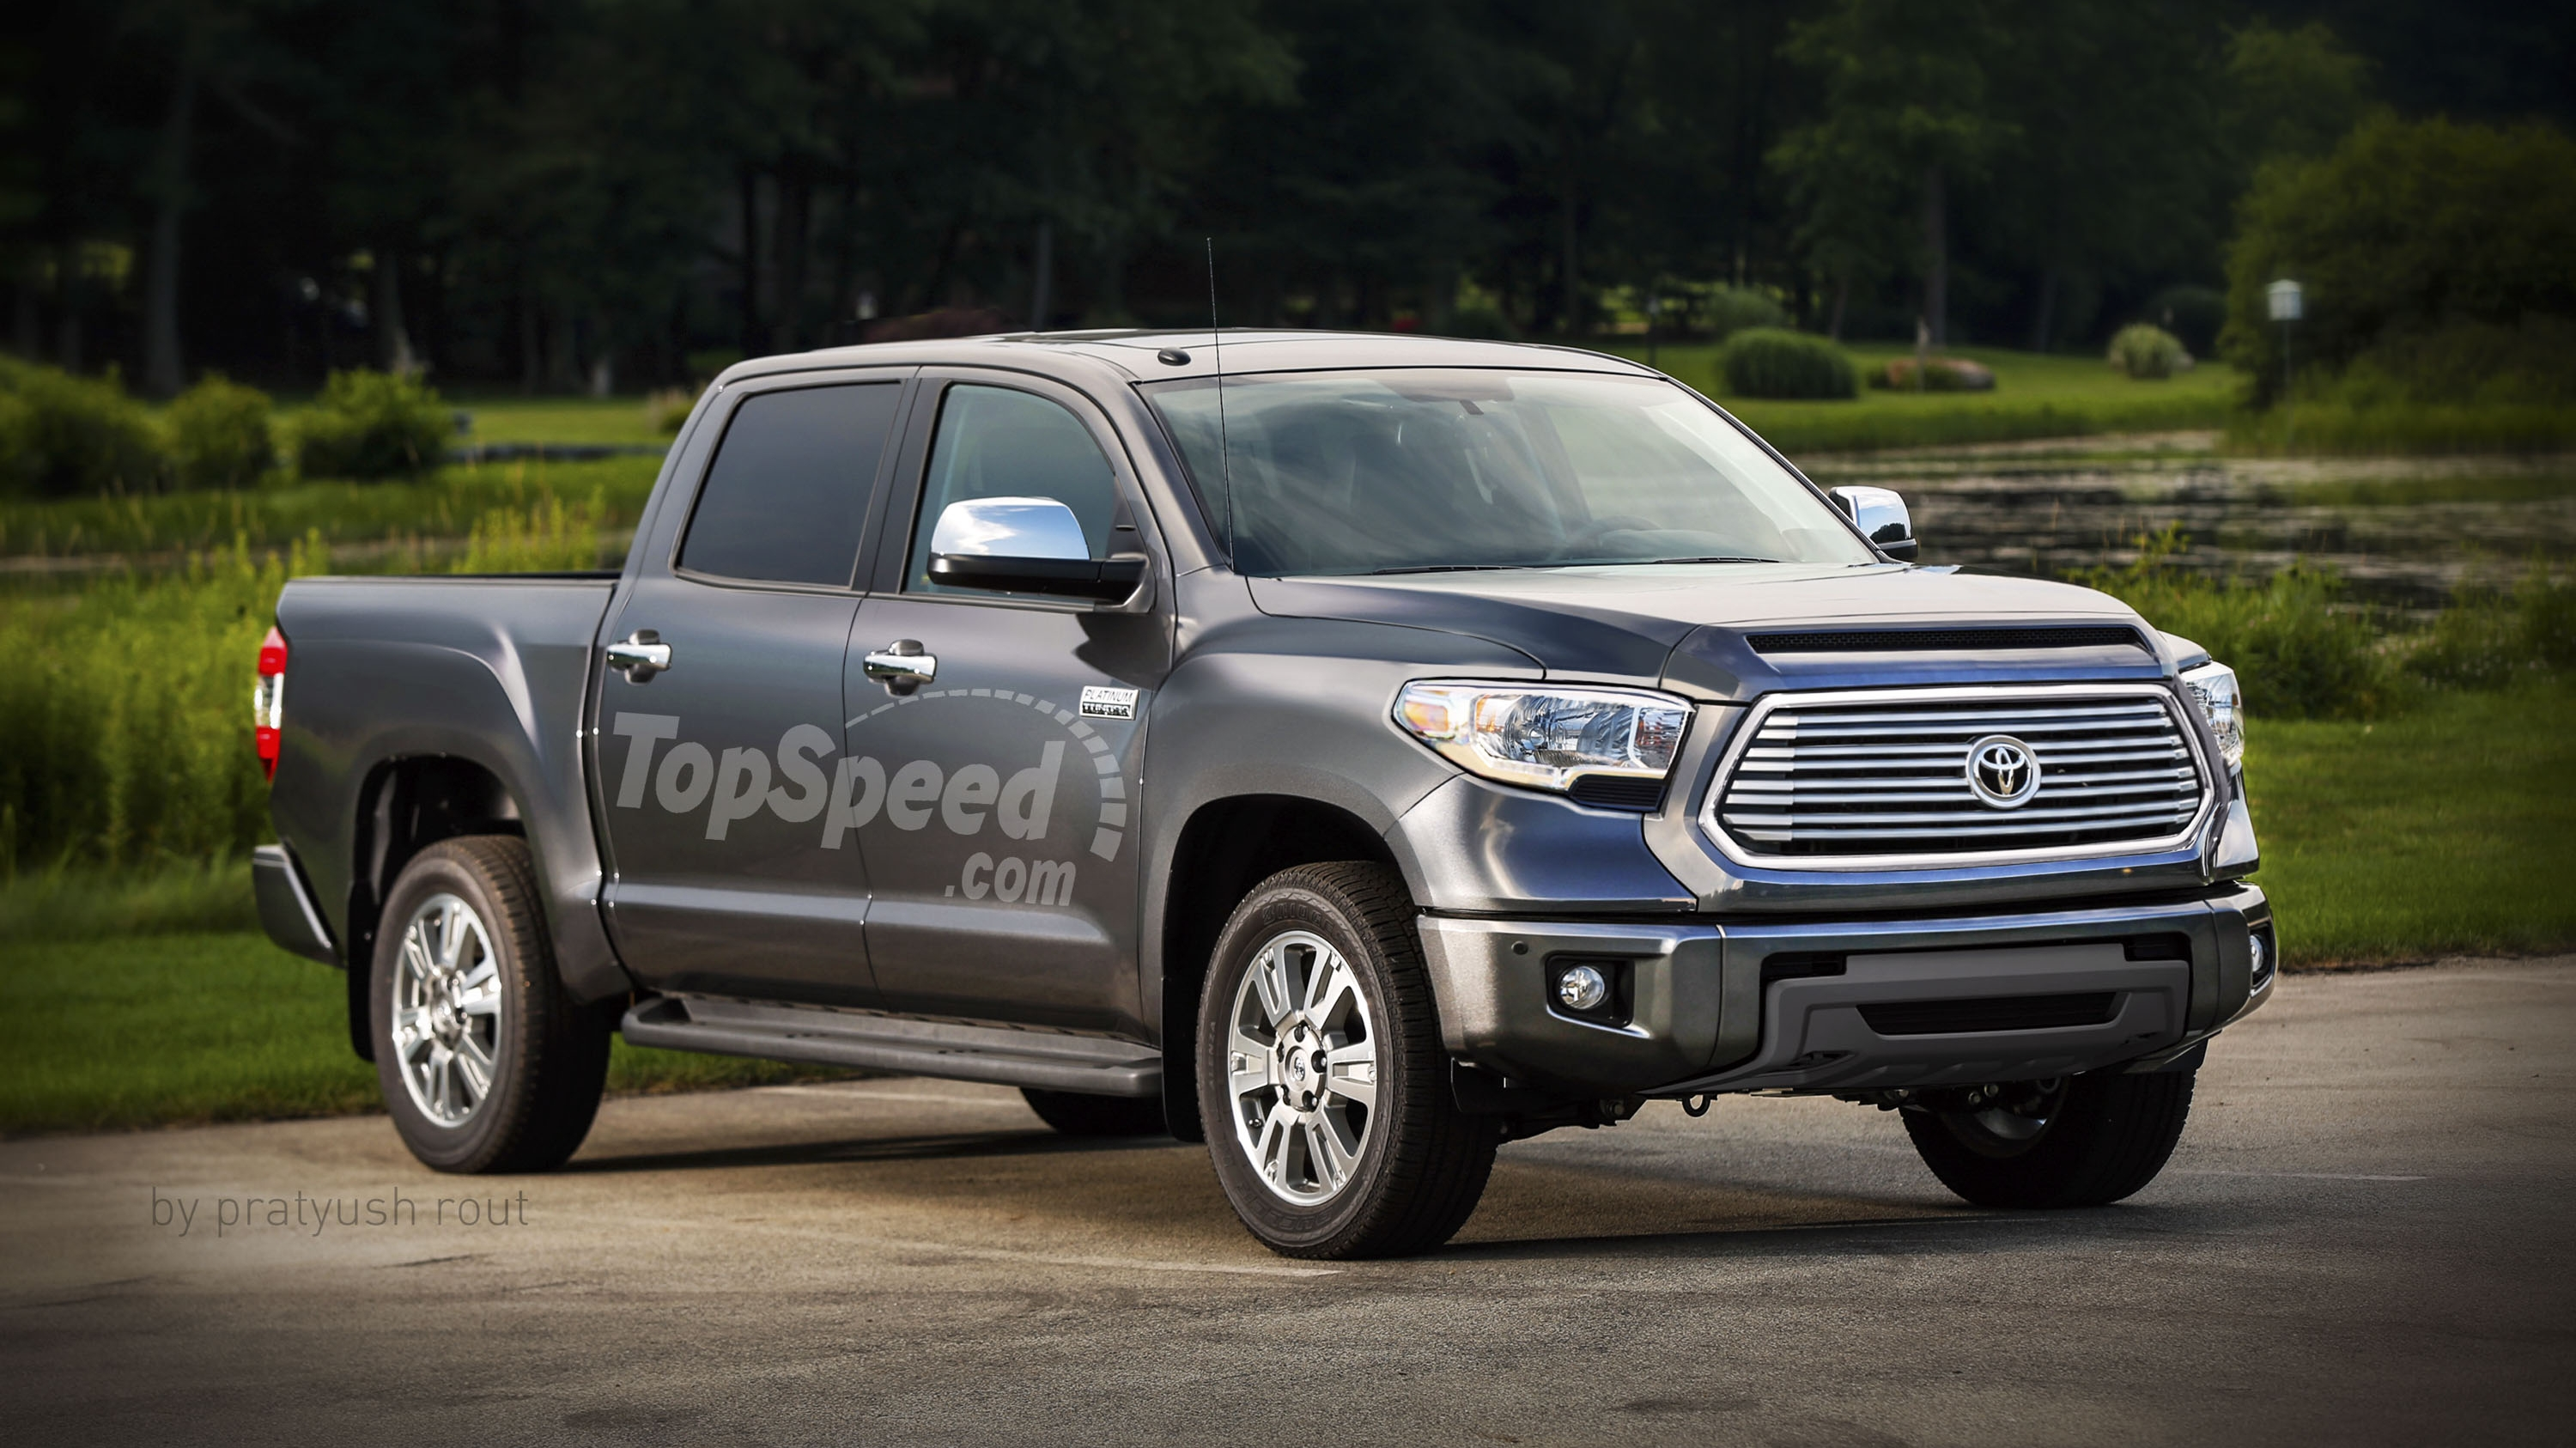 2019 Toyota Tundra Review - Gallery - Top Speed